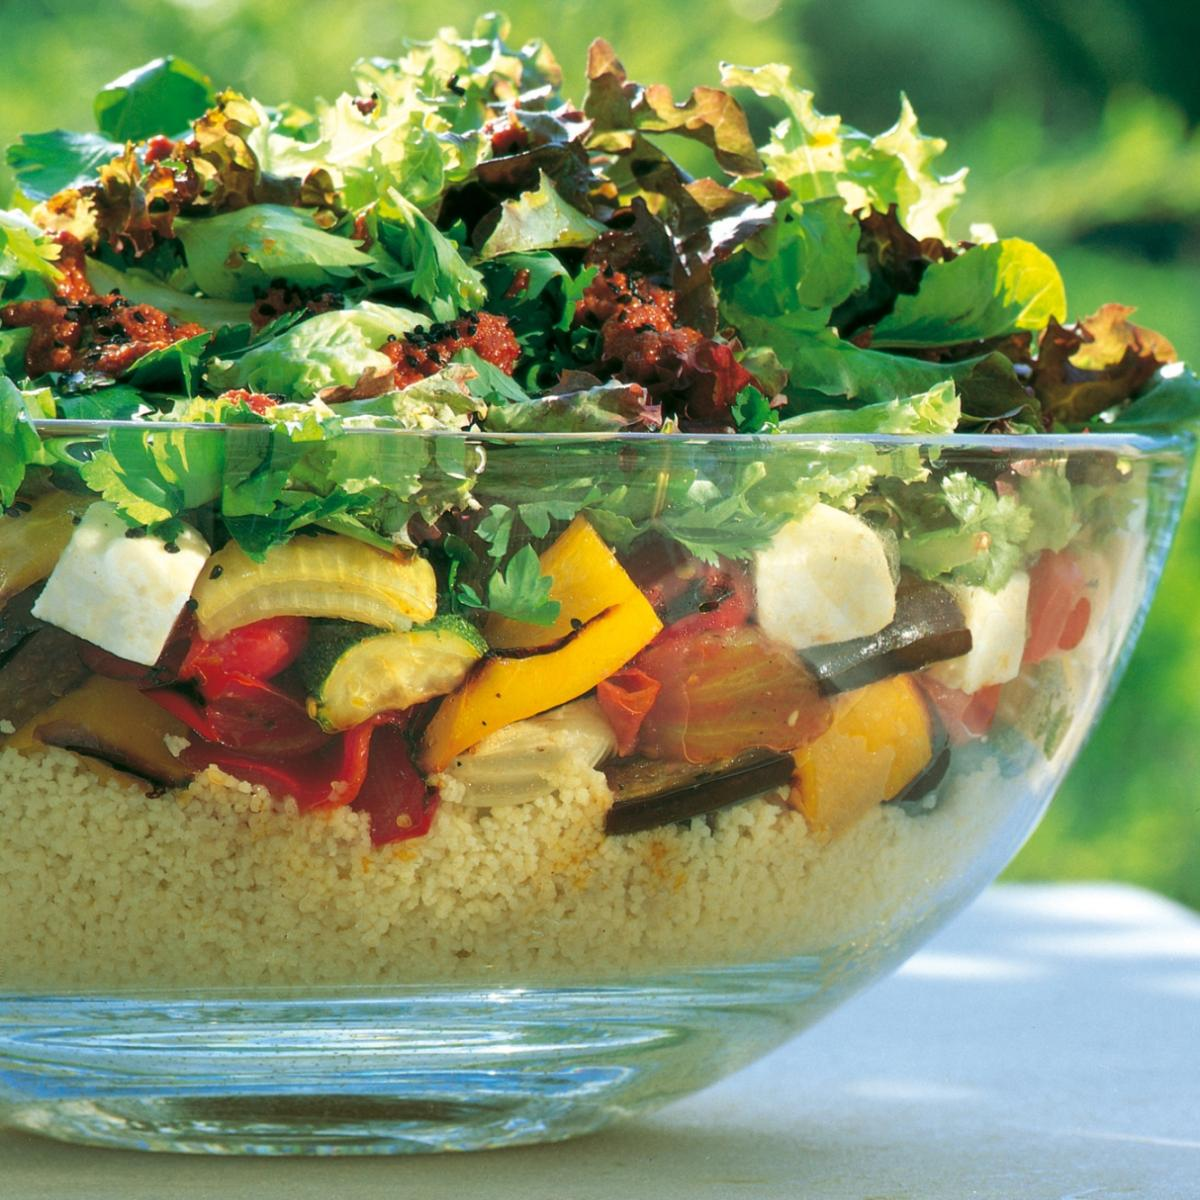 Summer roasted vegetable cous cous salad with harissa style dressing